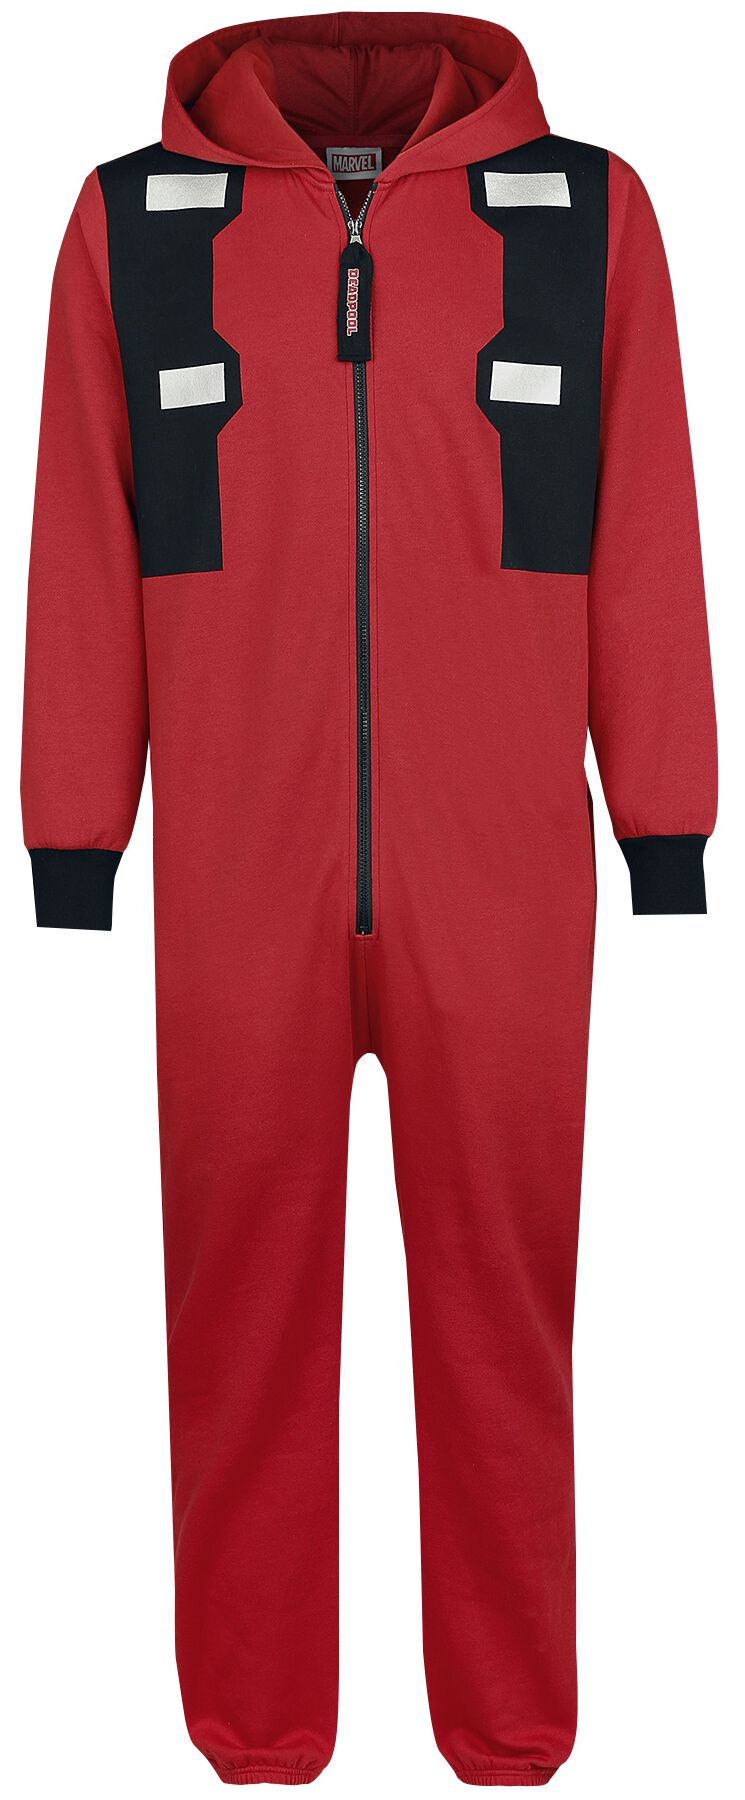 Image of   Deadpool Logo Jumpsuit rød-sort